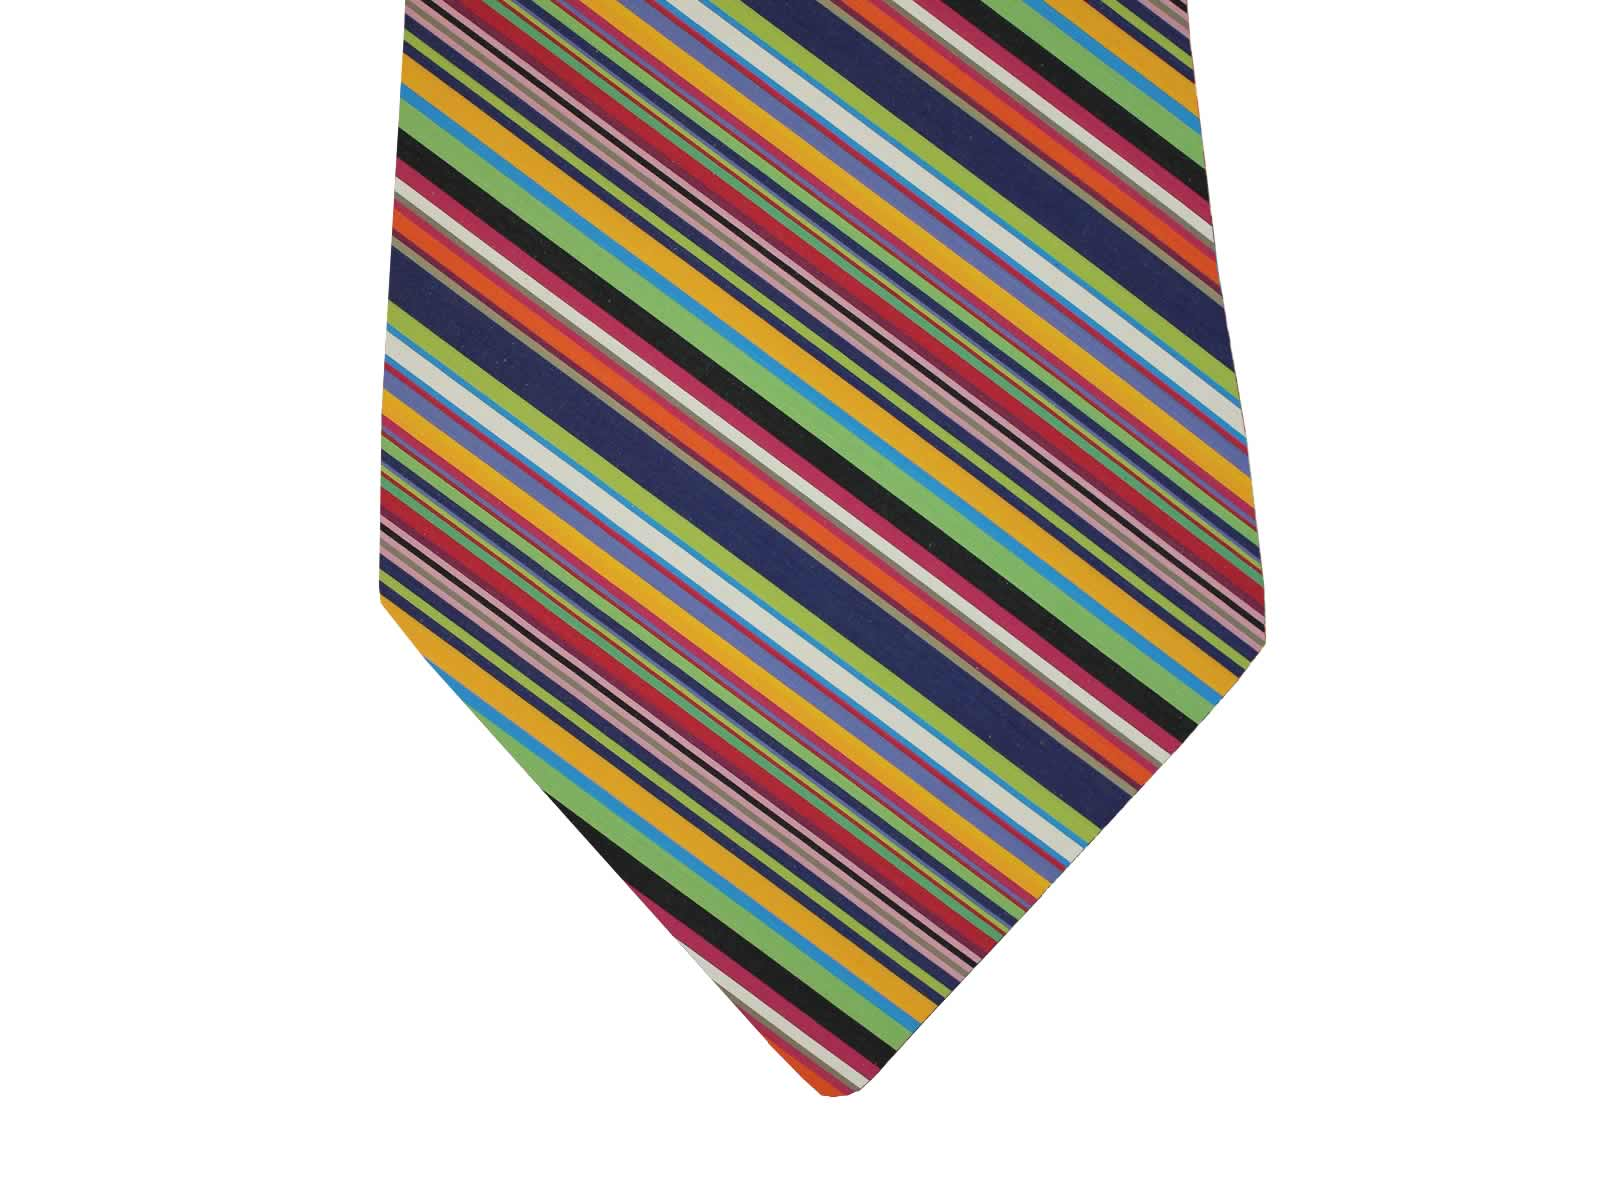 Multi-coloured Striped Ties from the Stripes Company